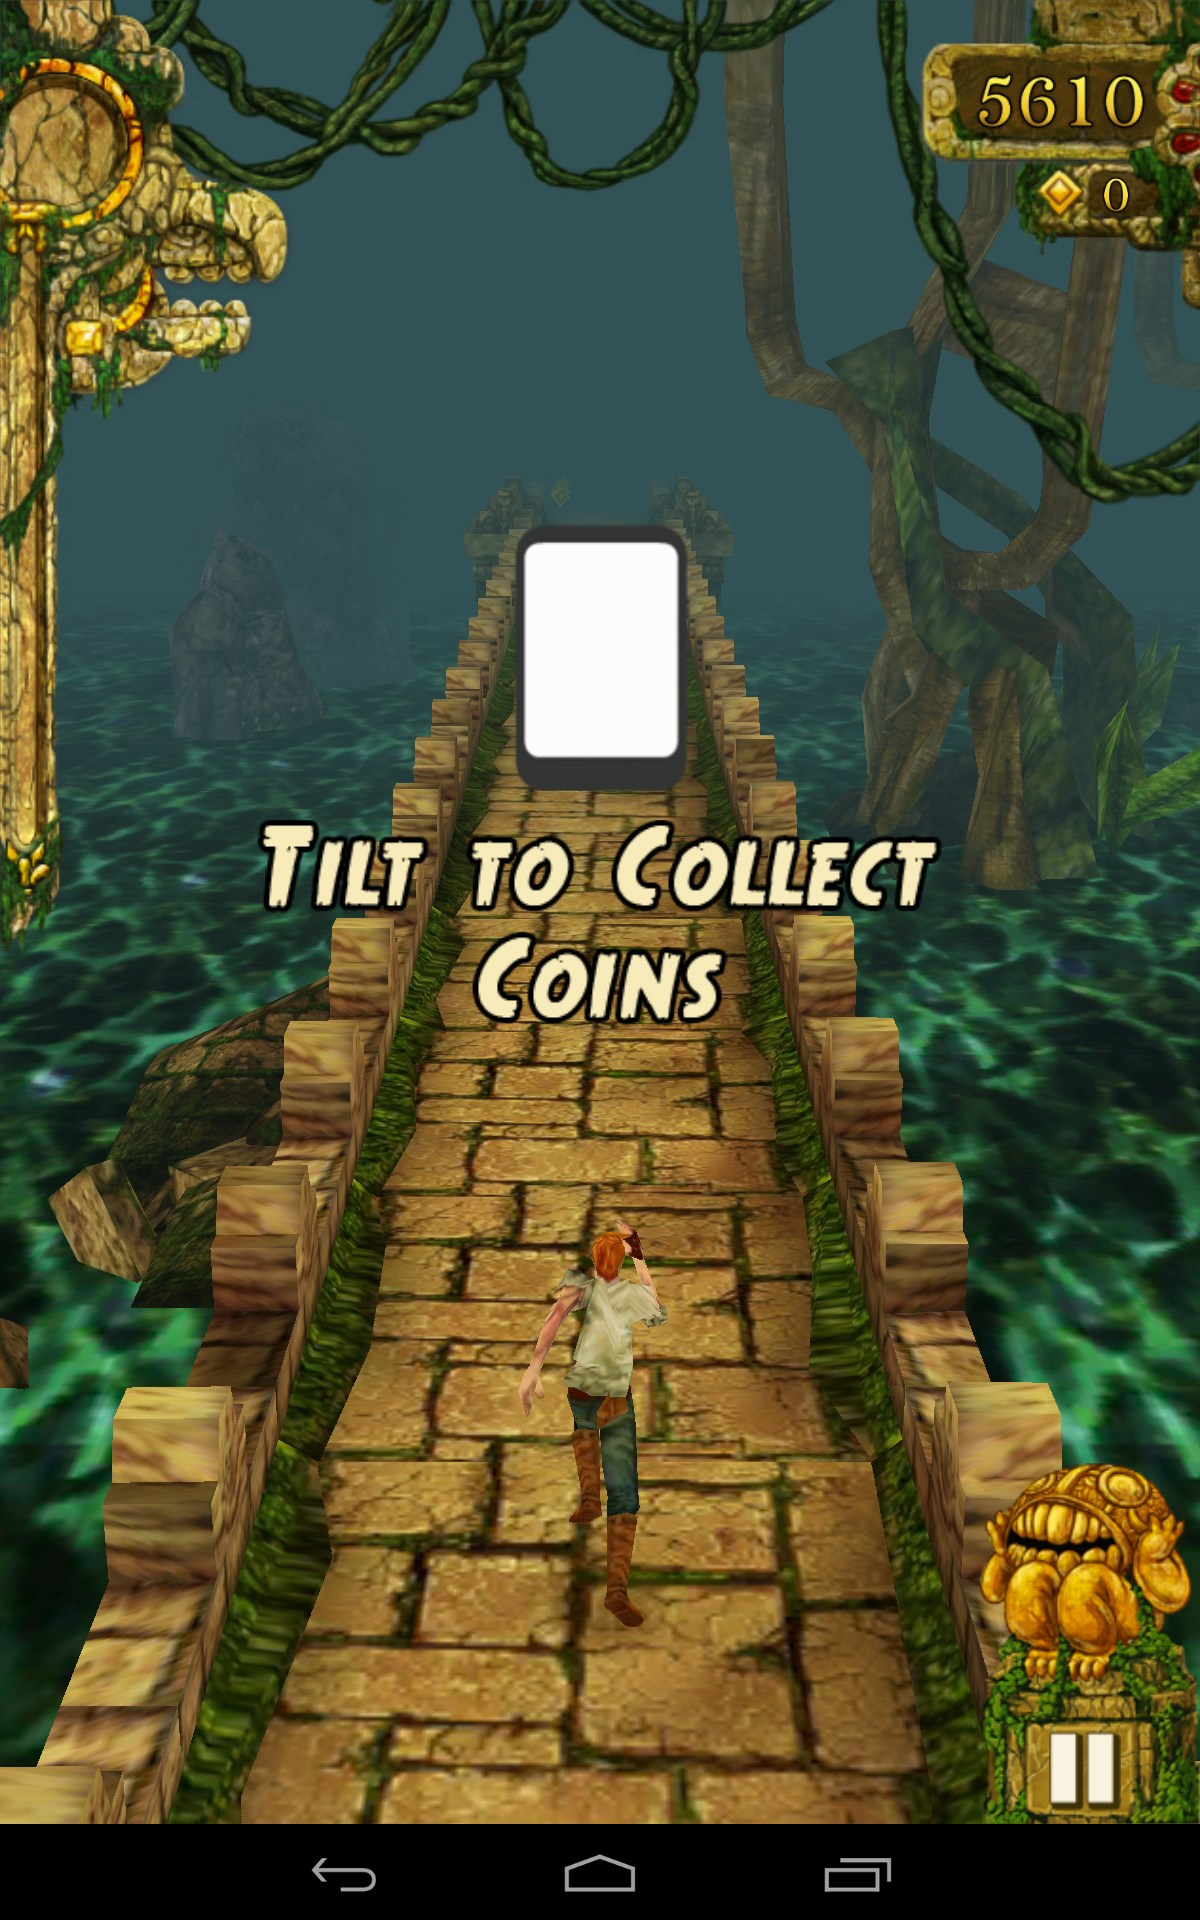 Temple run 2 game guide unofficial by the yuw | nook book (ebook.